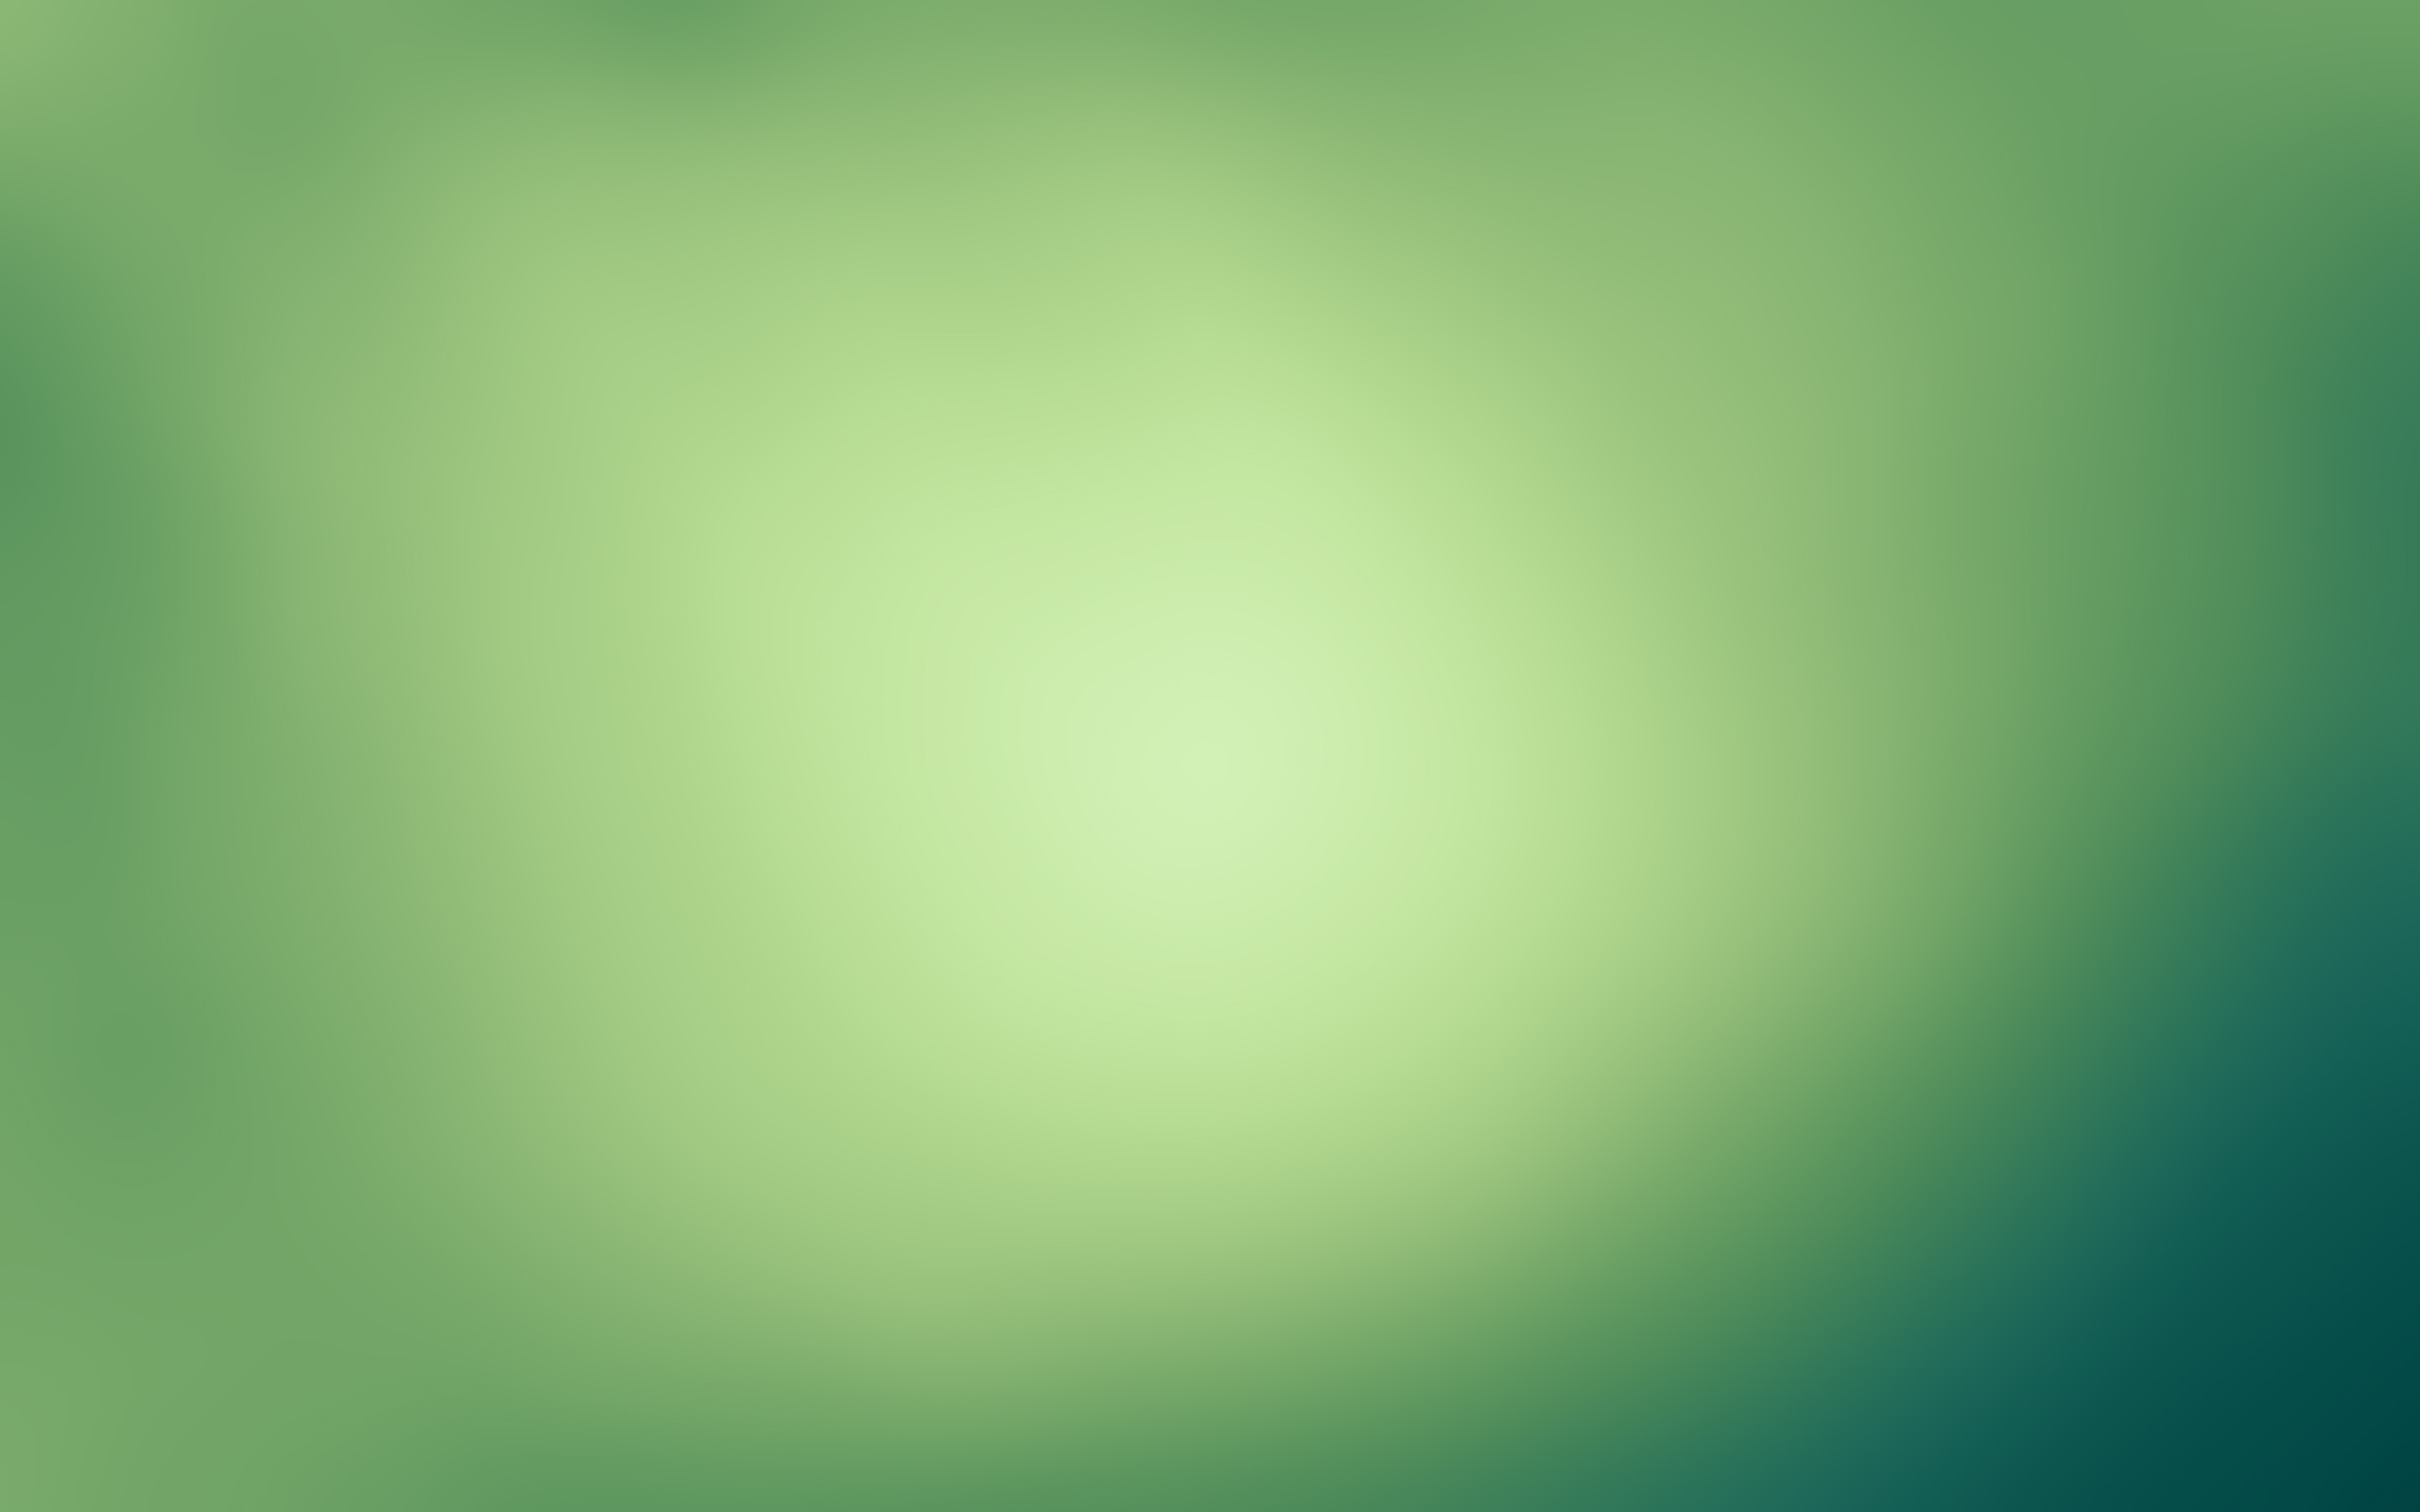 Green Color Lightness and Darkness Differs Single Color Wallpaper 2560x1600